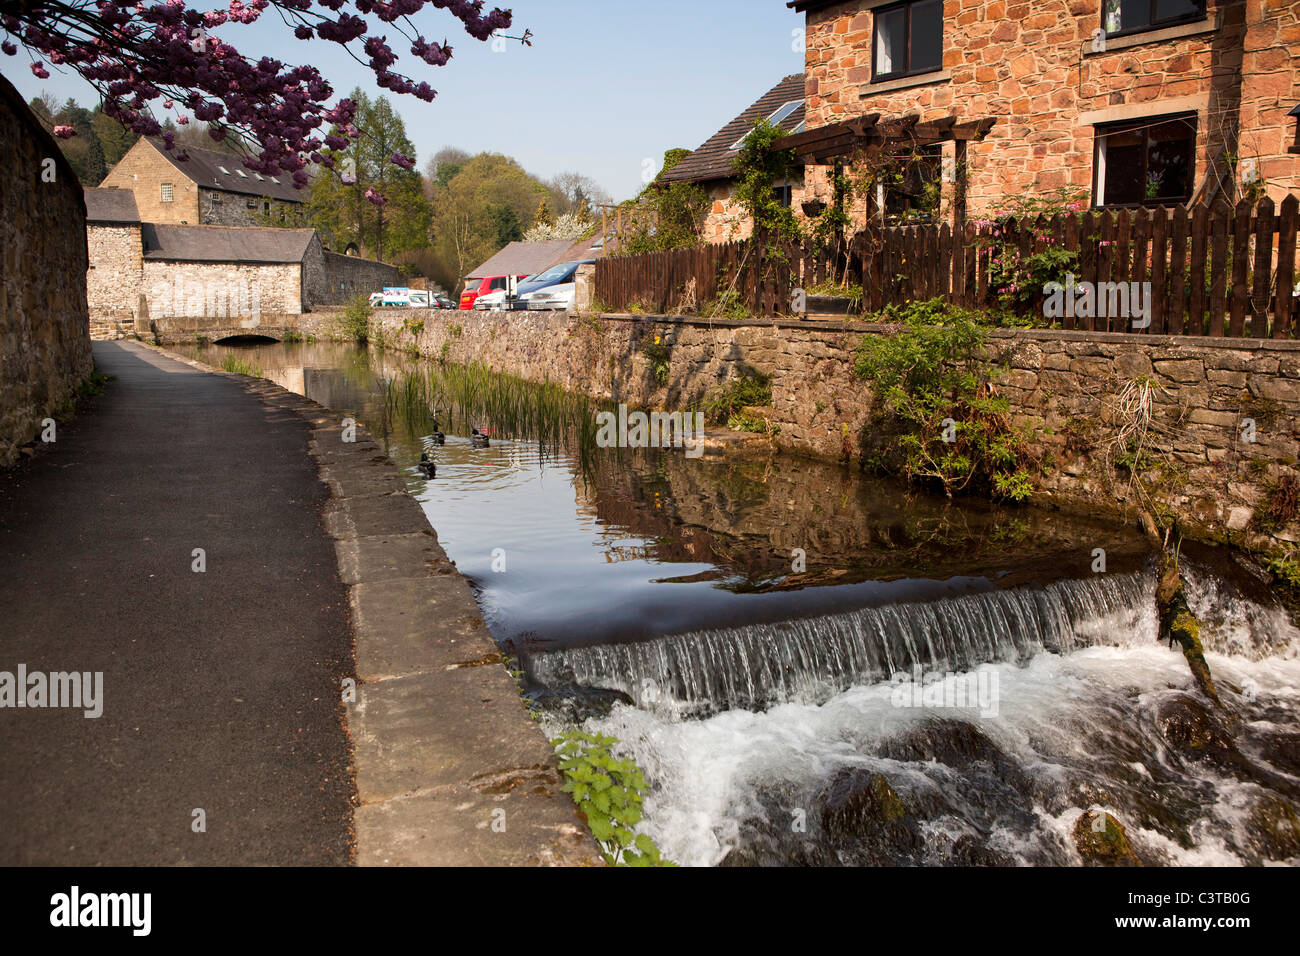 UK, Derbyshire, Peak District, Bakewell, weir on man-made backwater of River Wye passing through town - Stock Image